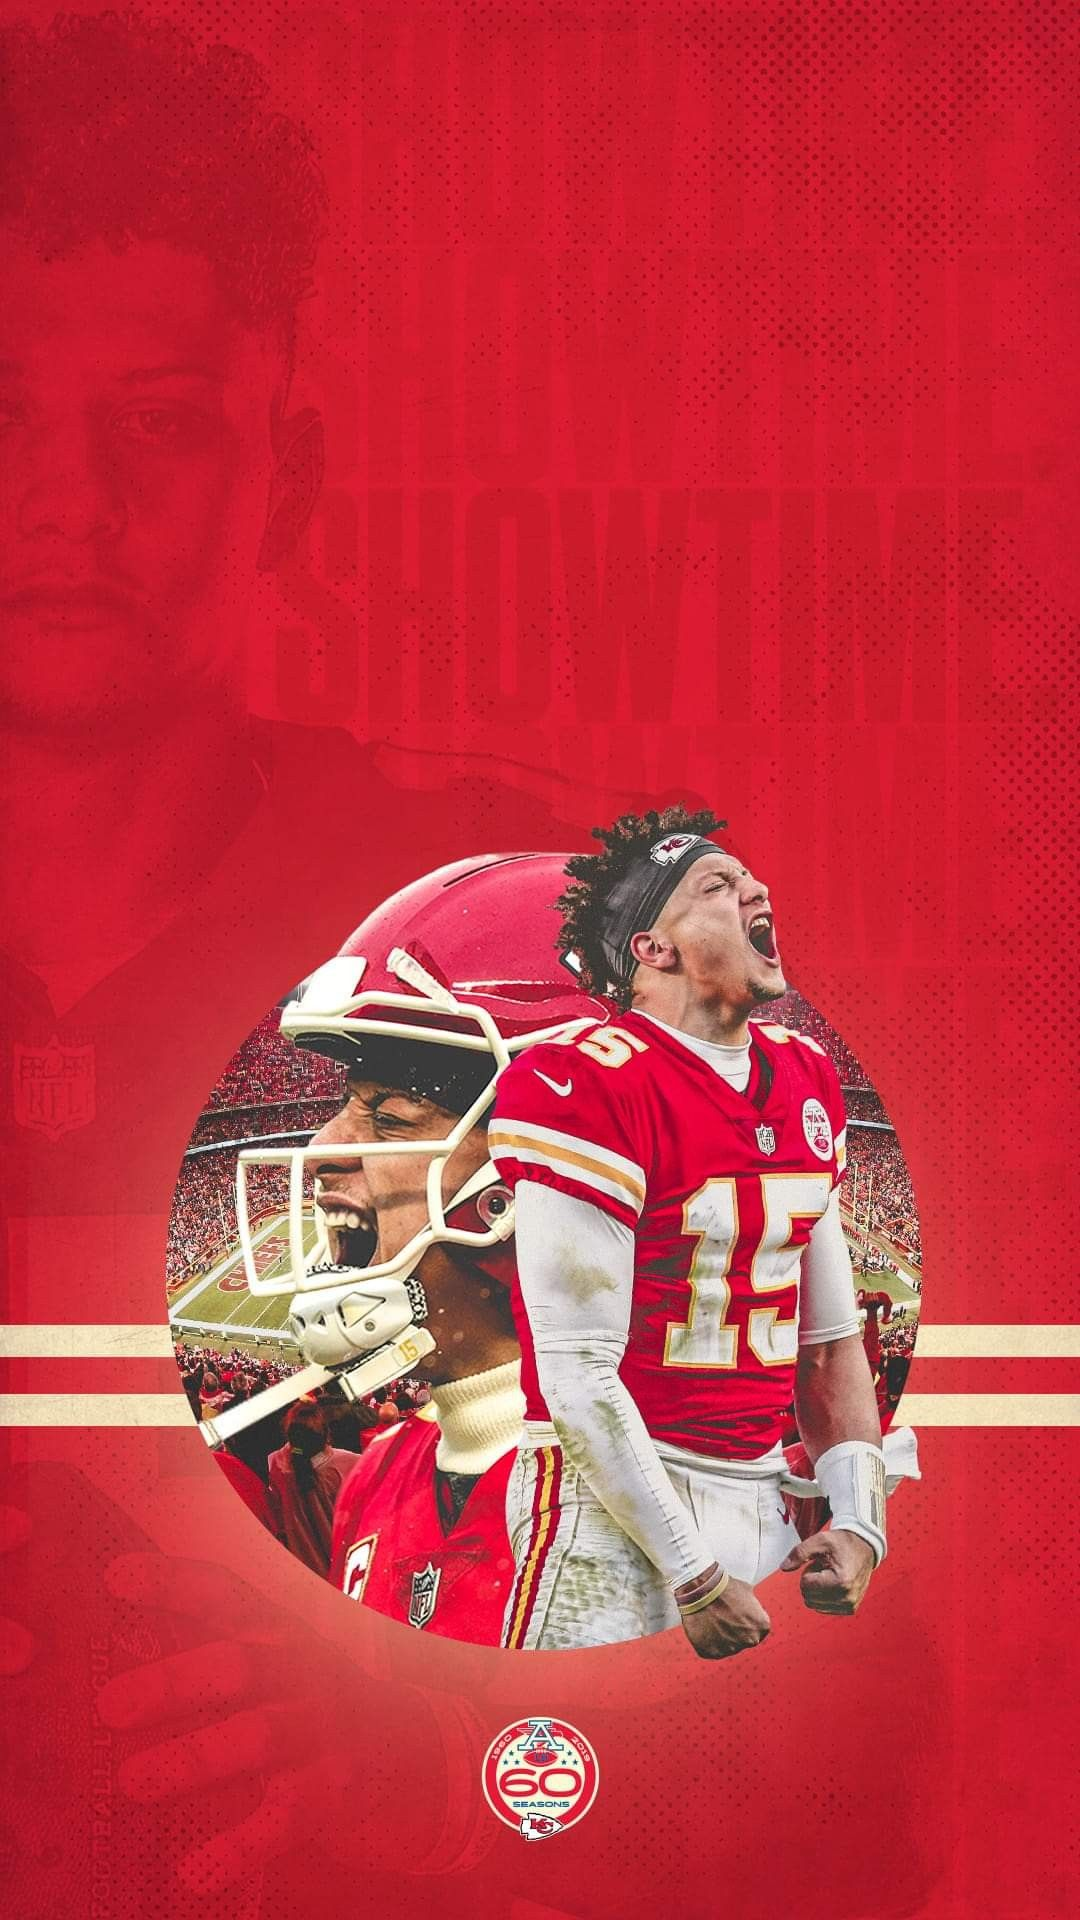 Pin By Lee Ann Goodemote On Kc Chiefs In 2020 Kansas City Chiefs Football Kansas City Nfl Kc Chiefs Football